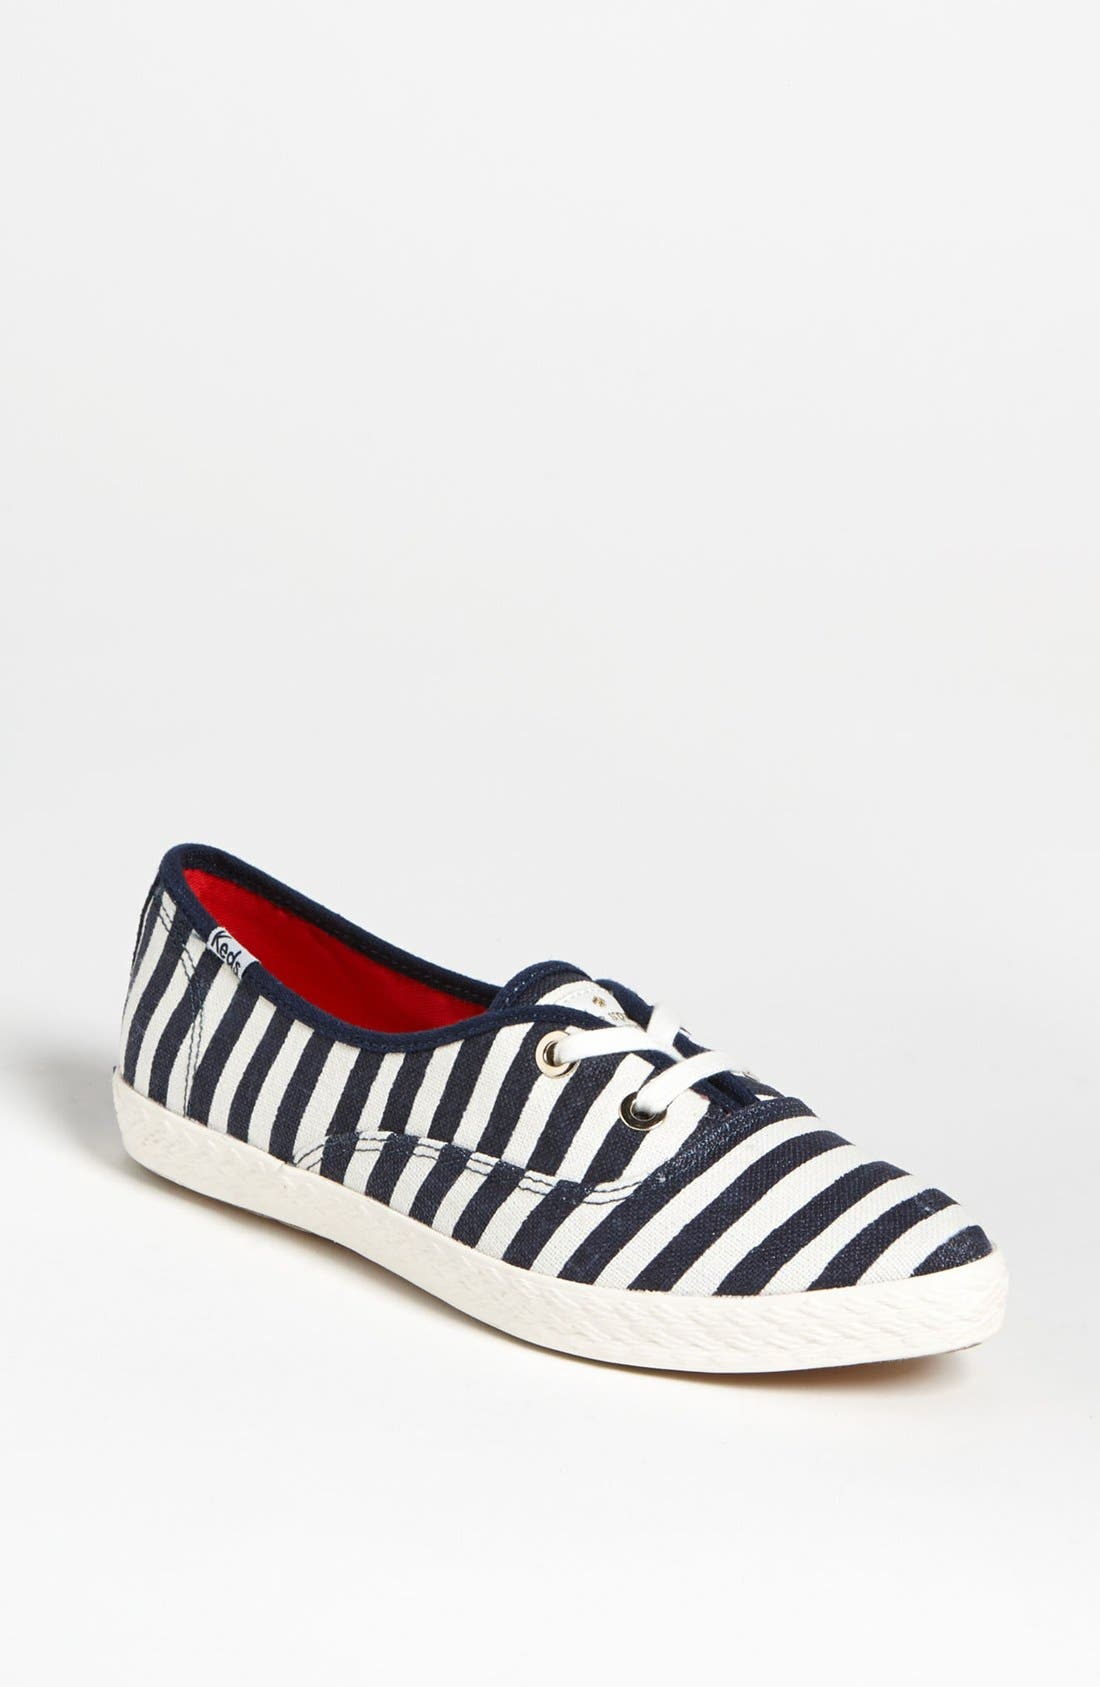 Keds<sup>®</sup> for kate spade new york 'pointer' sneaker, Main, color, 473